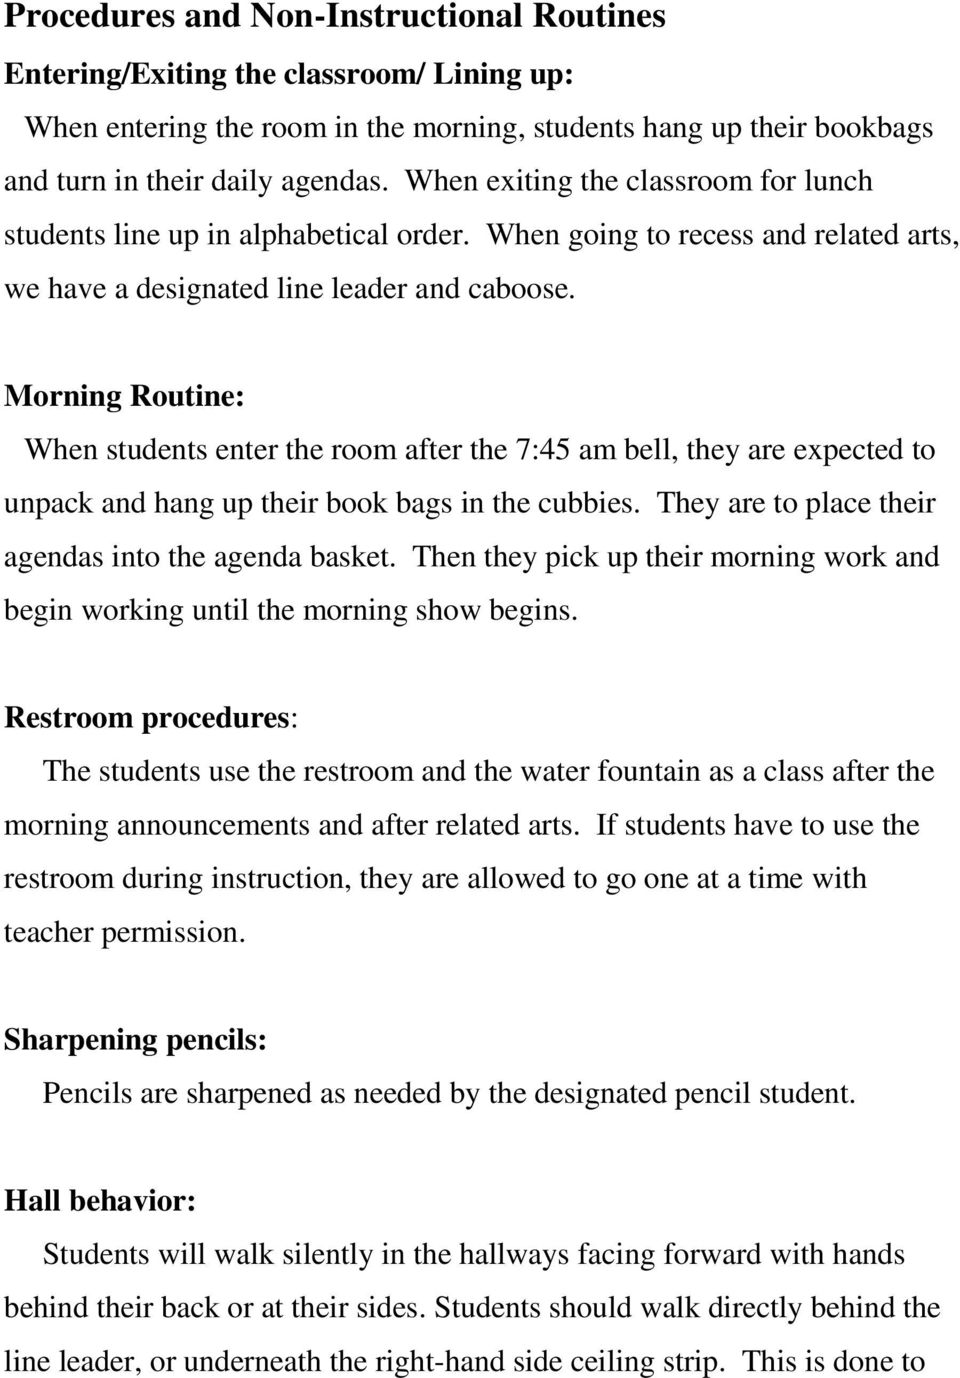 Morning Routine: When students enter the room after the 7:45 am bell, they are expected to unpack and hang up their book bags in the cubbies. They are to place their agendas into the agenda basket.